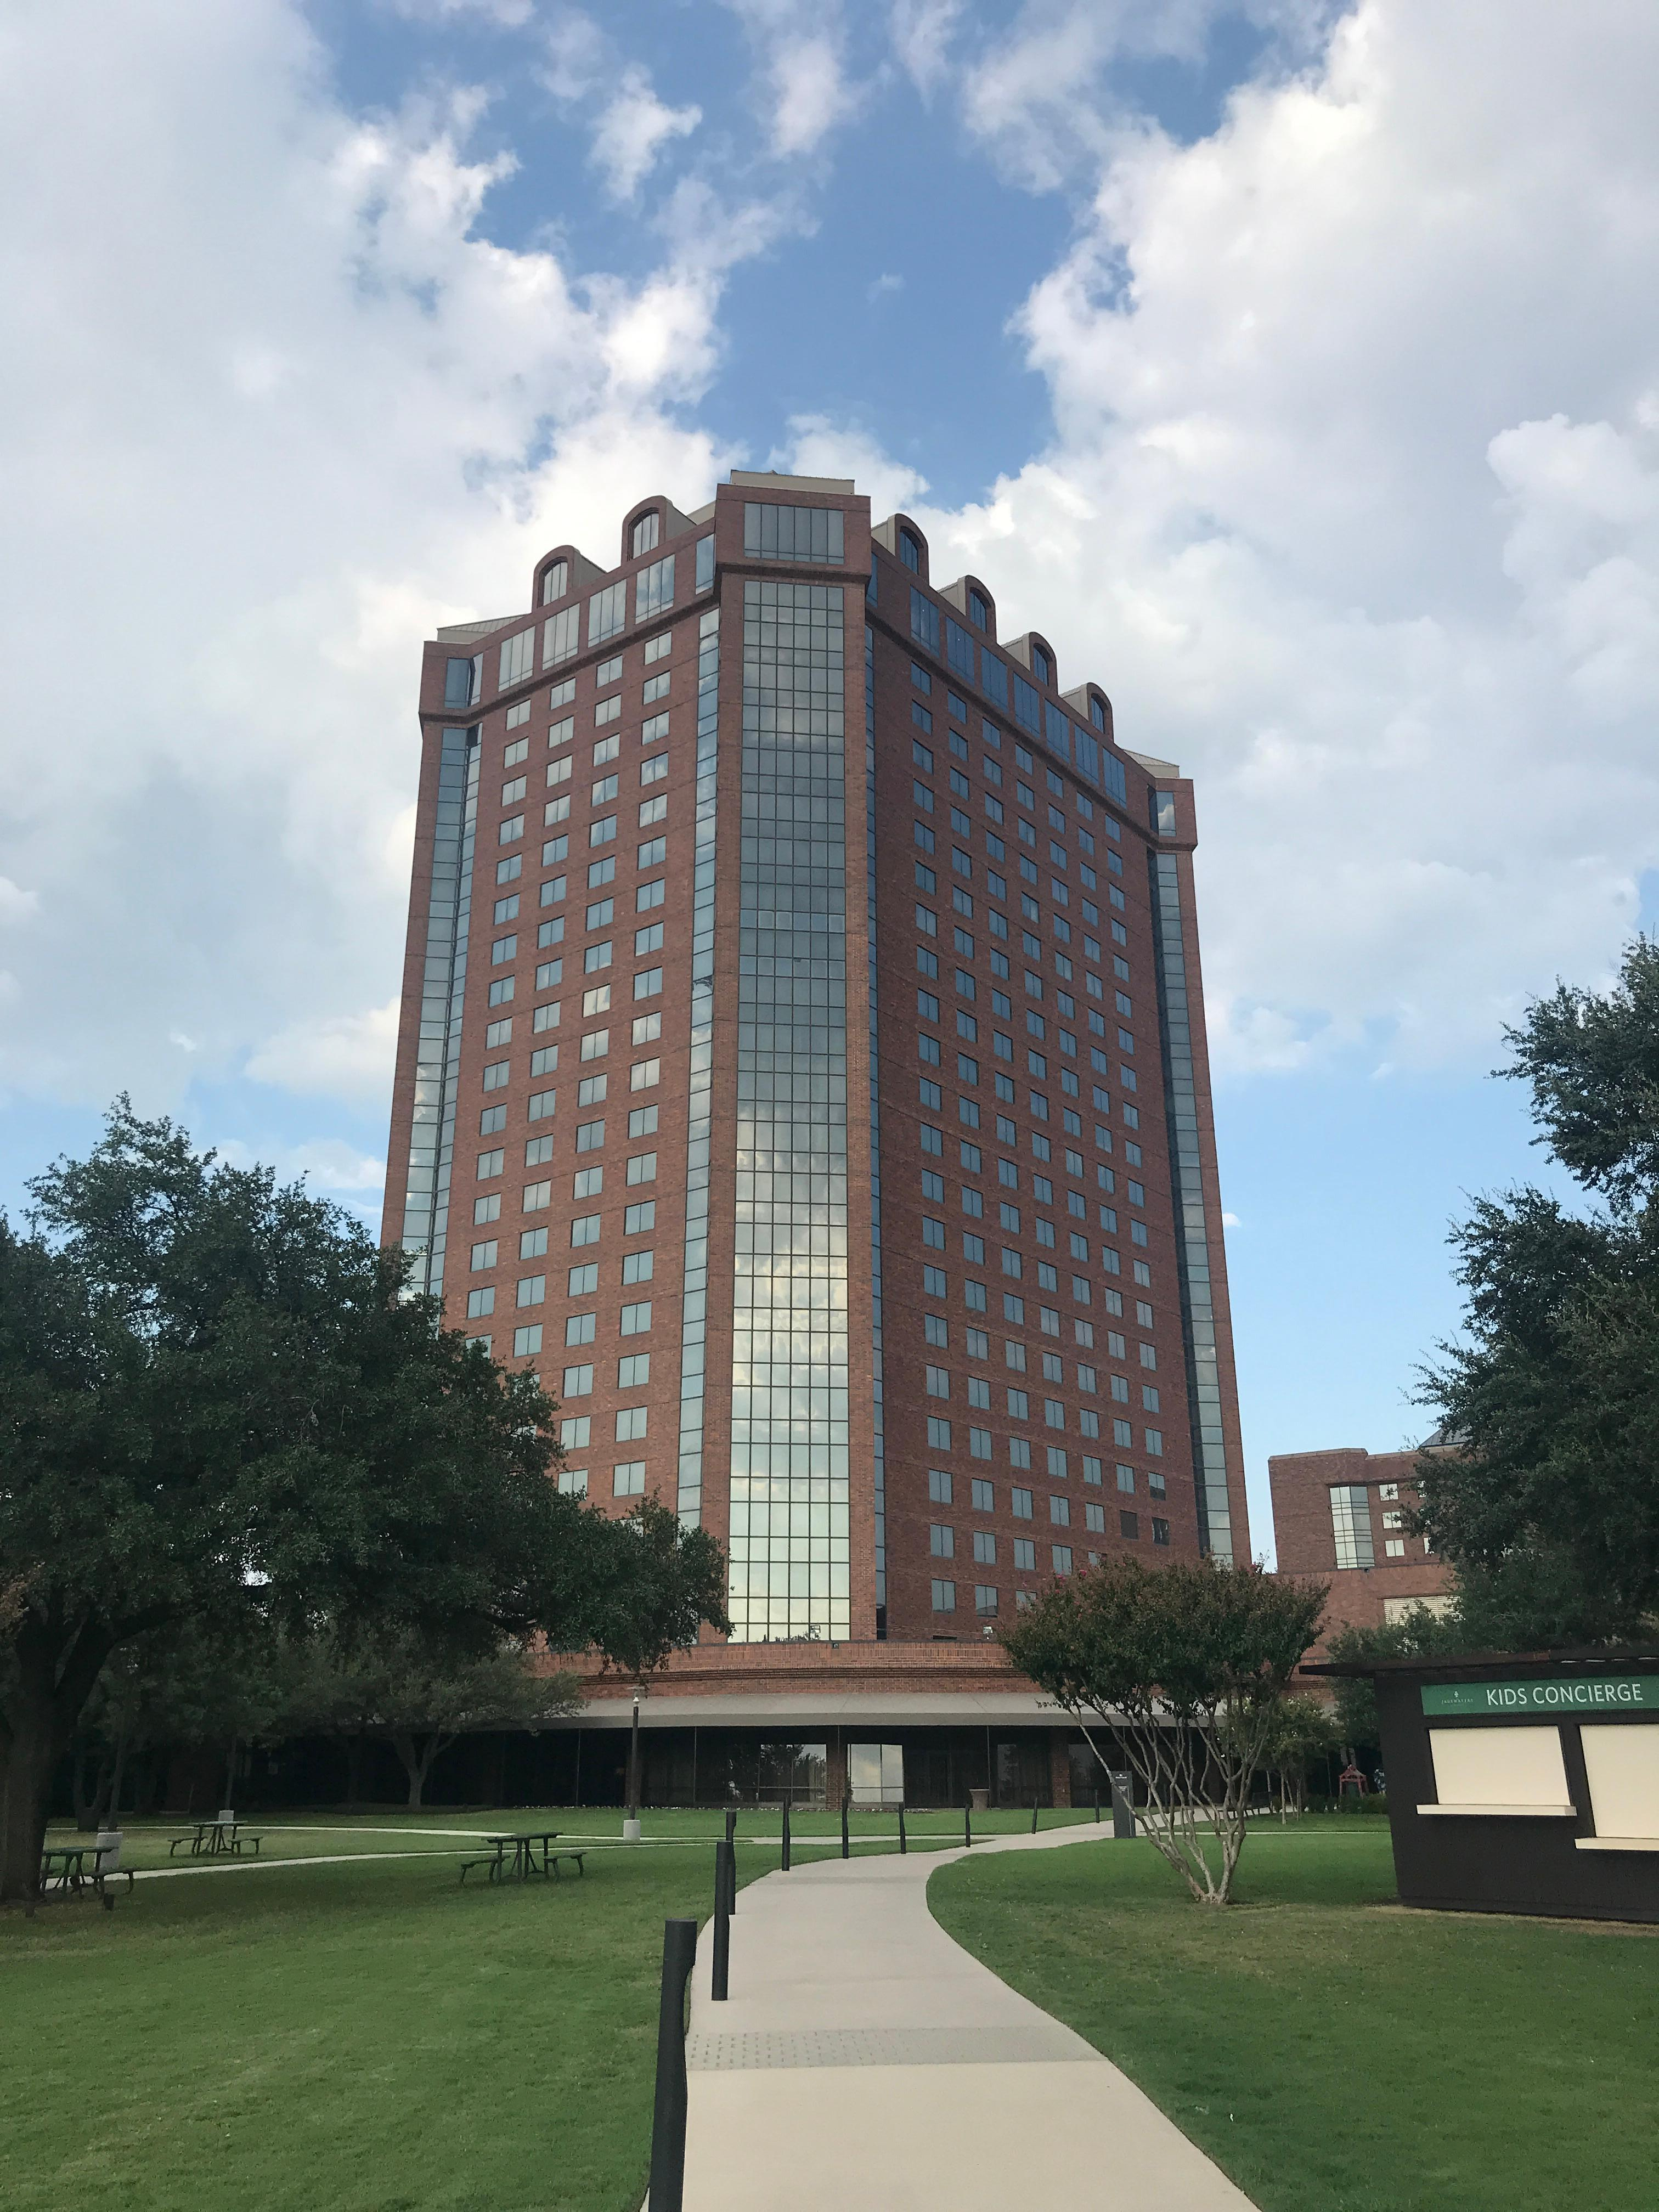 One of the hotel towers